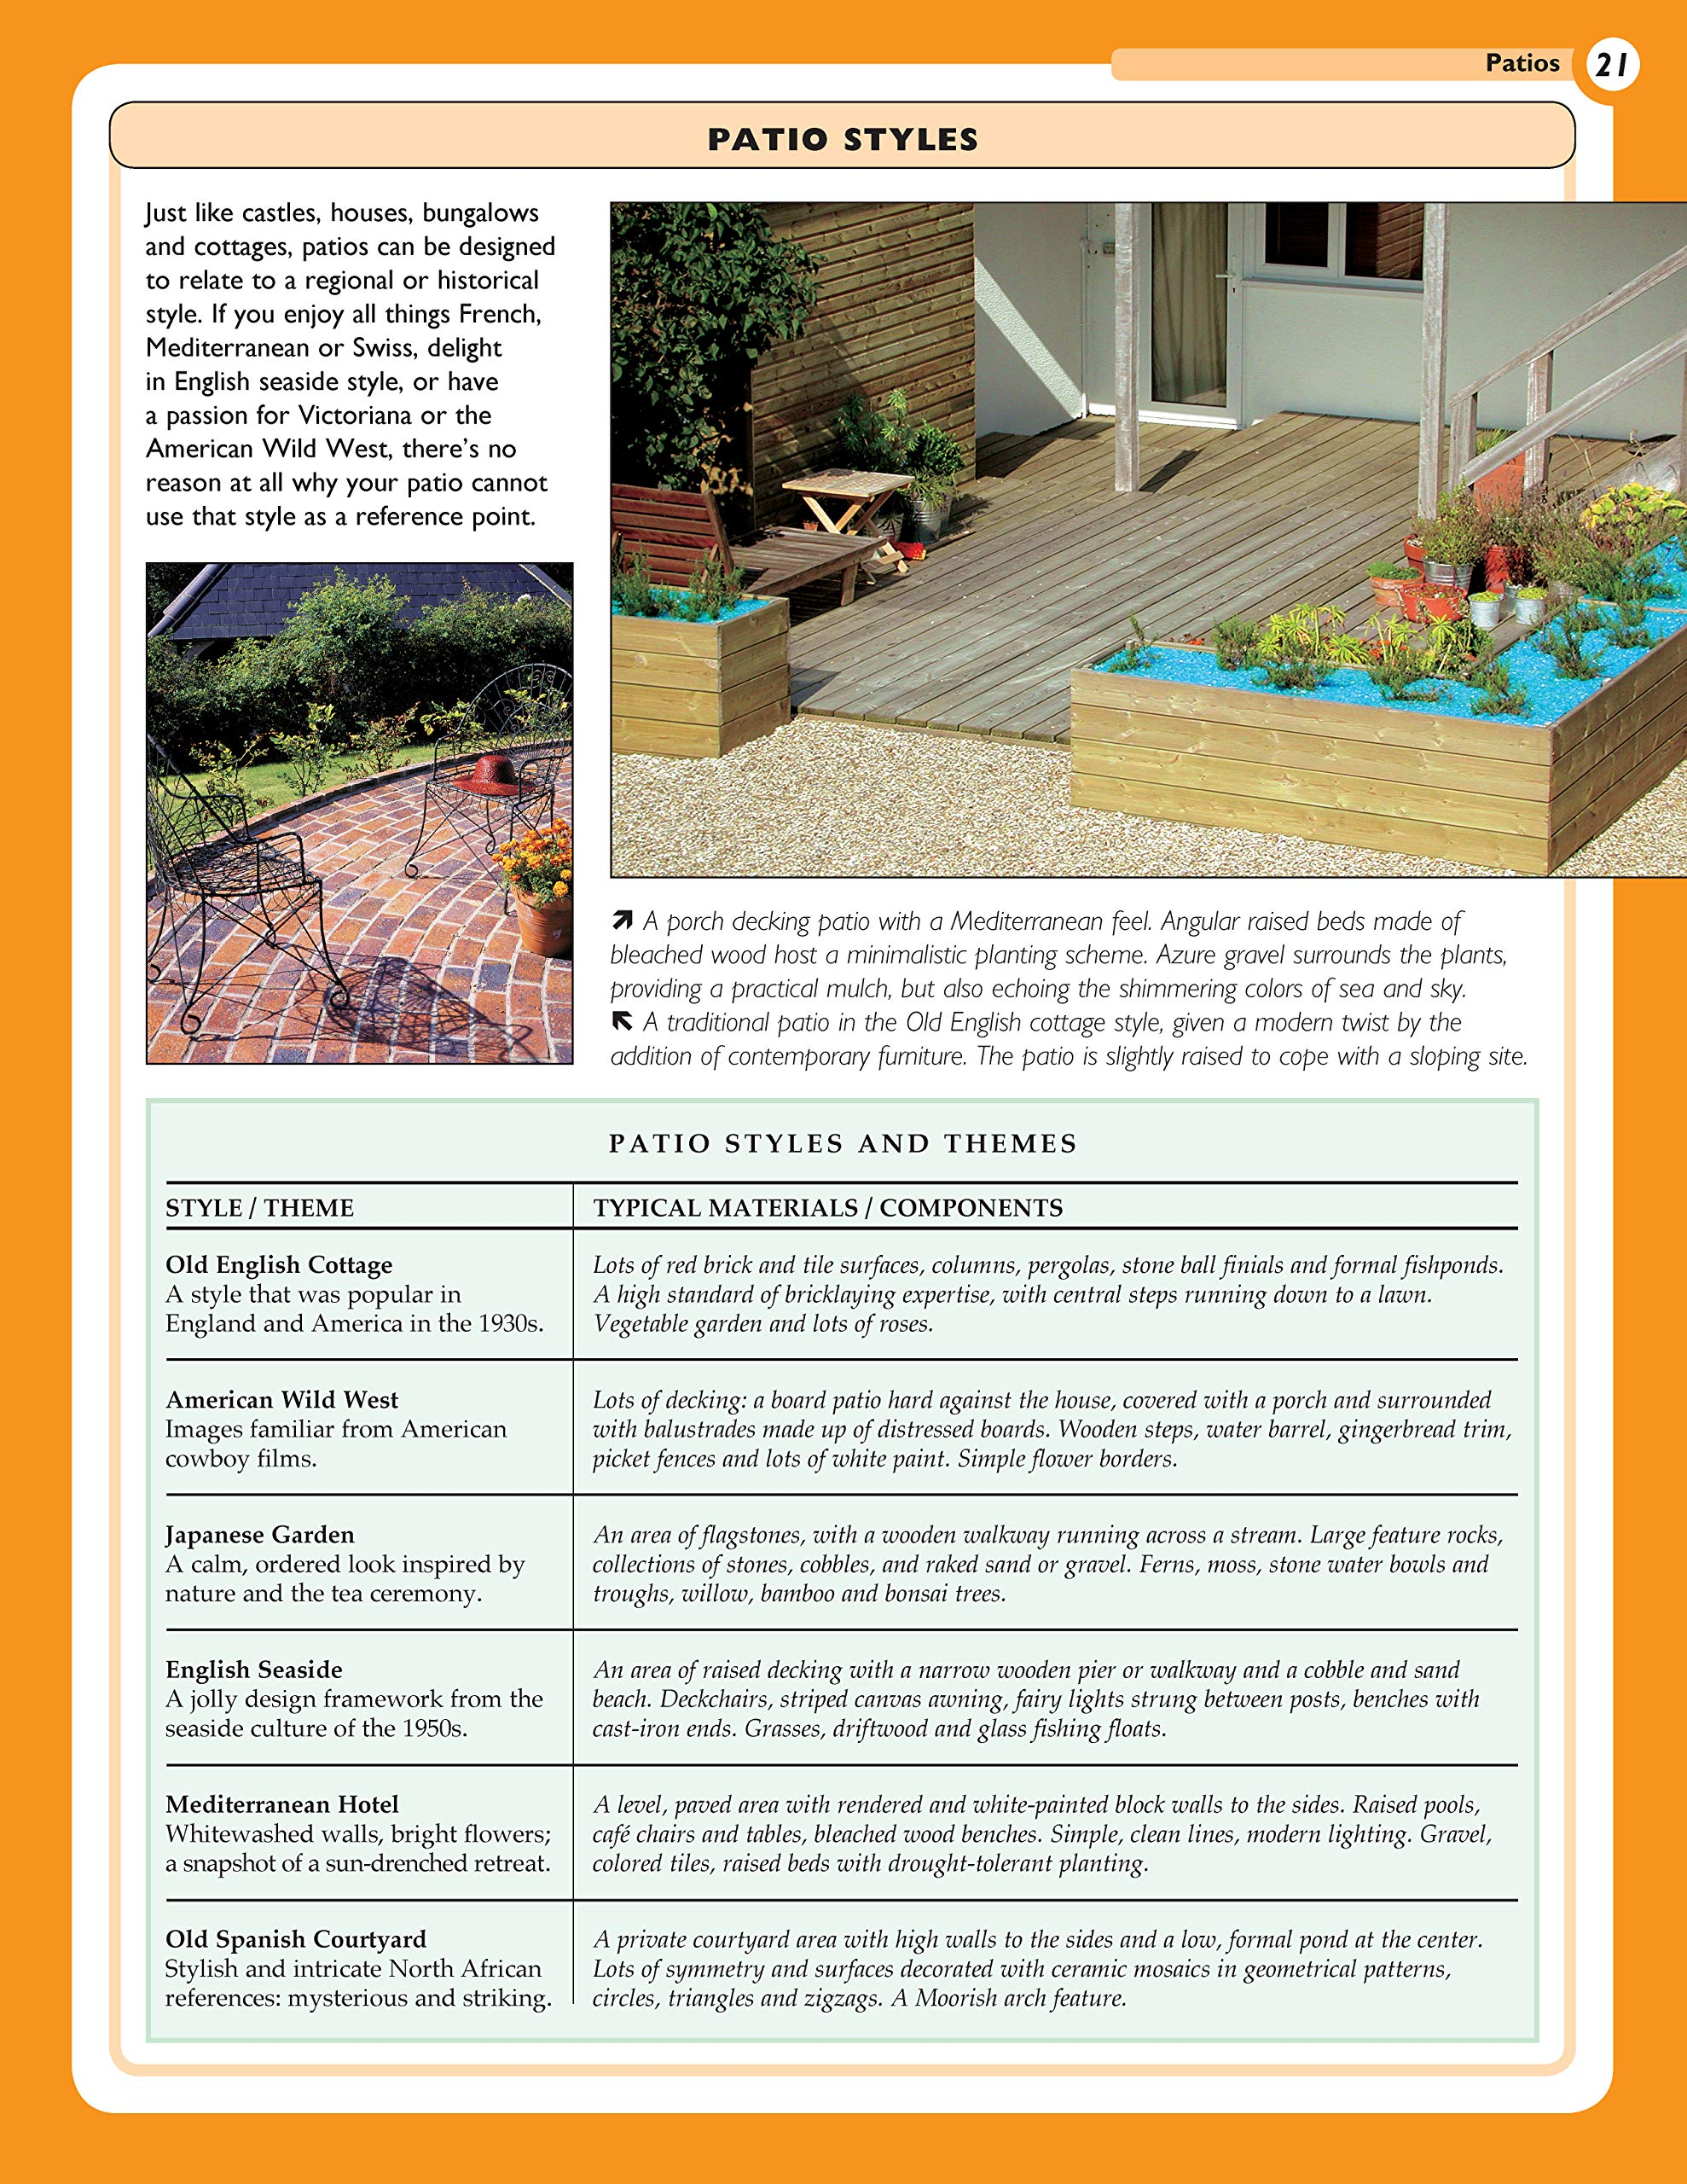 Patios: Designing, Building, Improving, and Maintaining Patios, Paths and Steps Specialist Guides: Amazon.es: Bridgewater A. & G: Libros en idiomas extranjeros